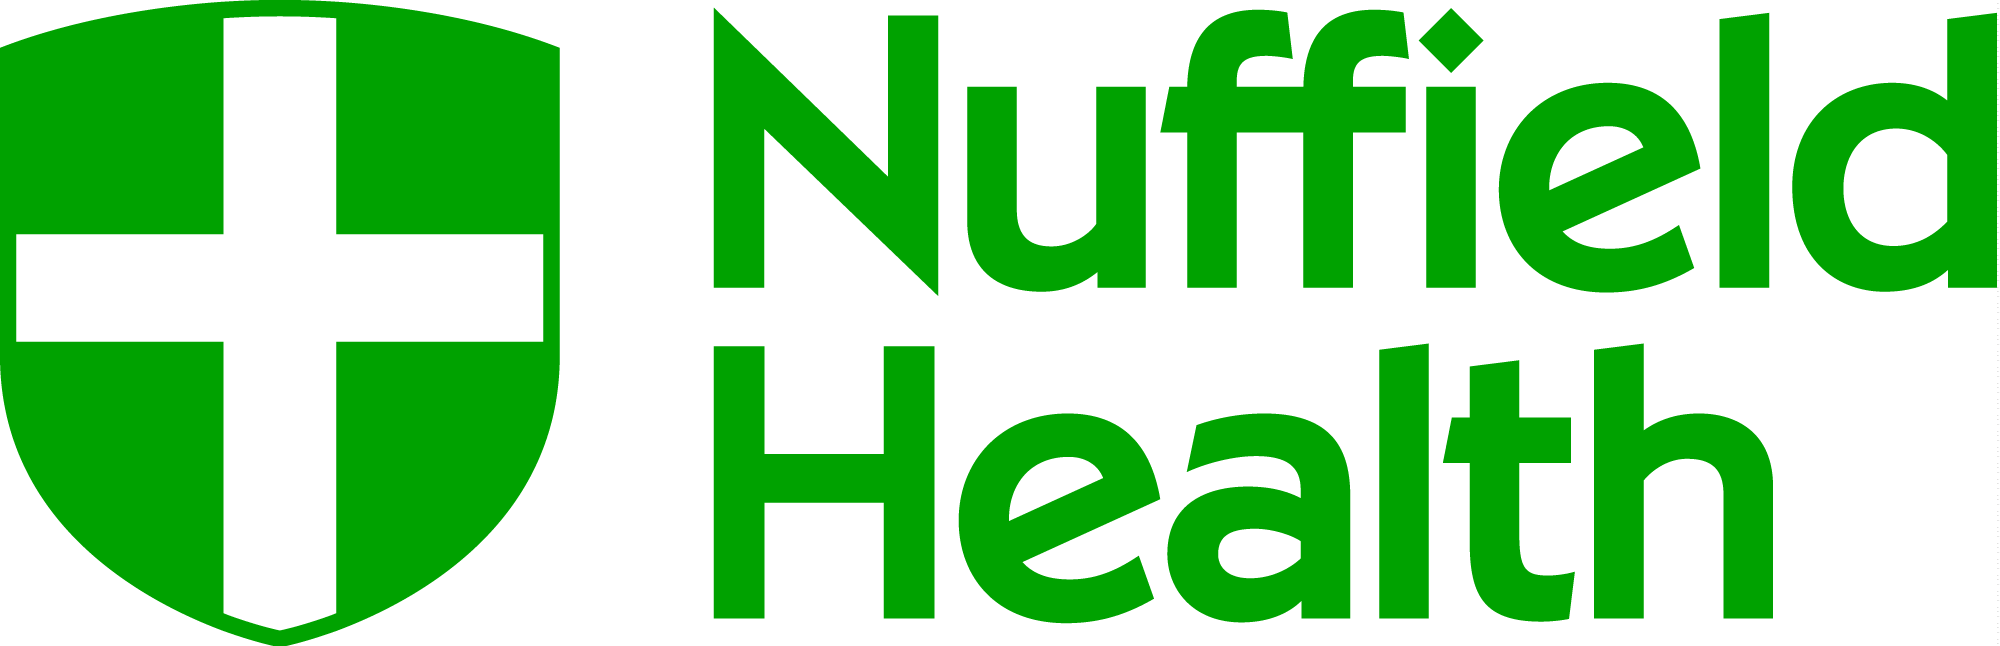 50  off monthly membership at nuffield health gyms vitality anniversary logos clip art anniversary logos template